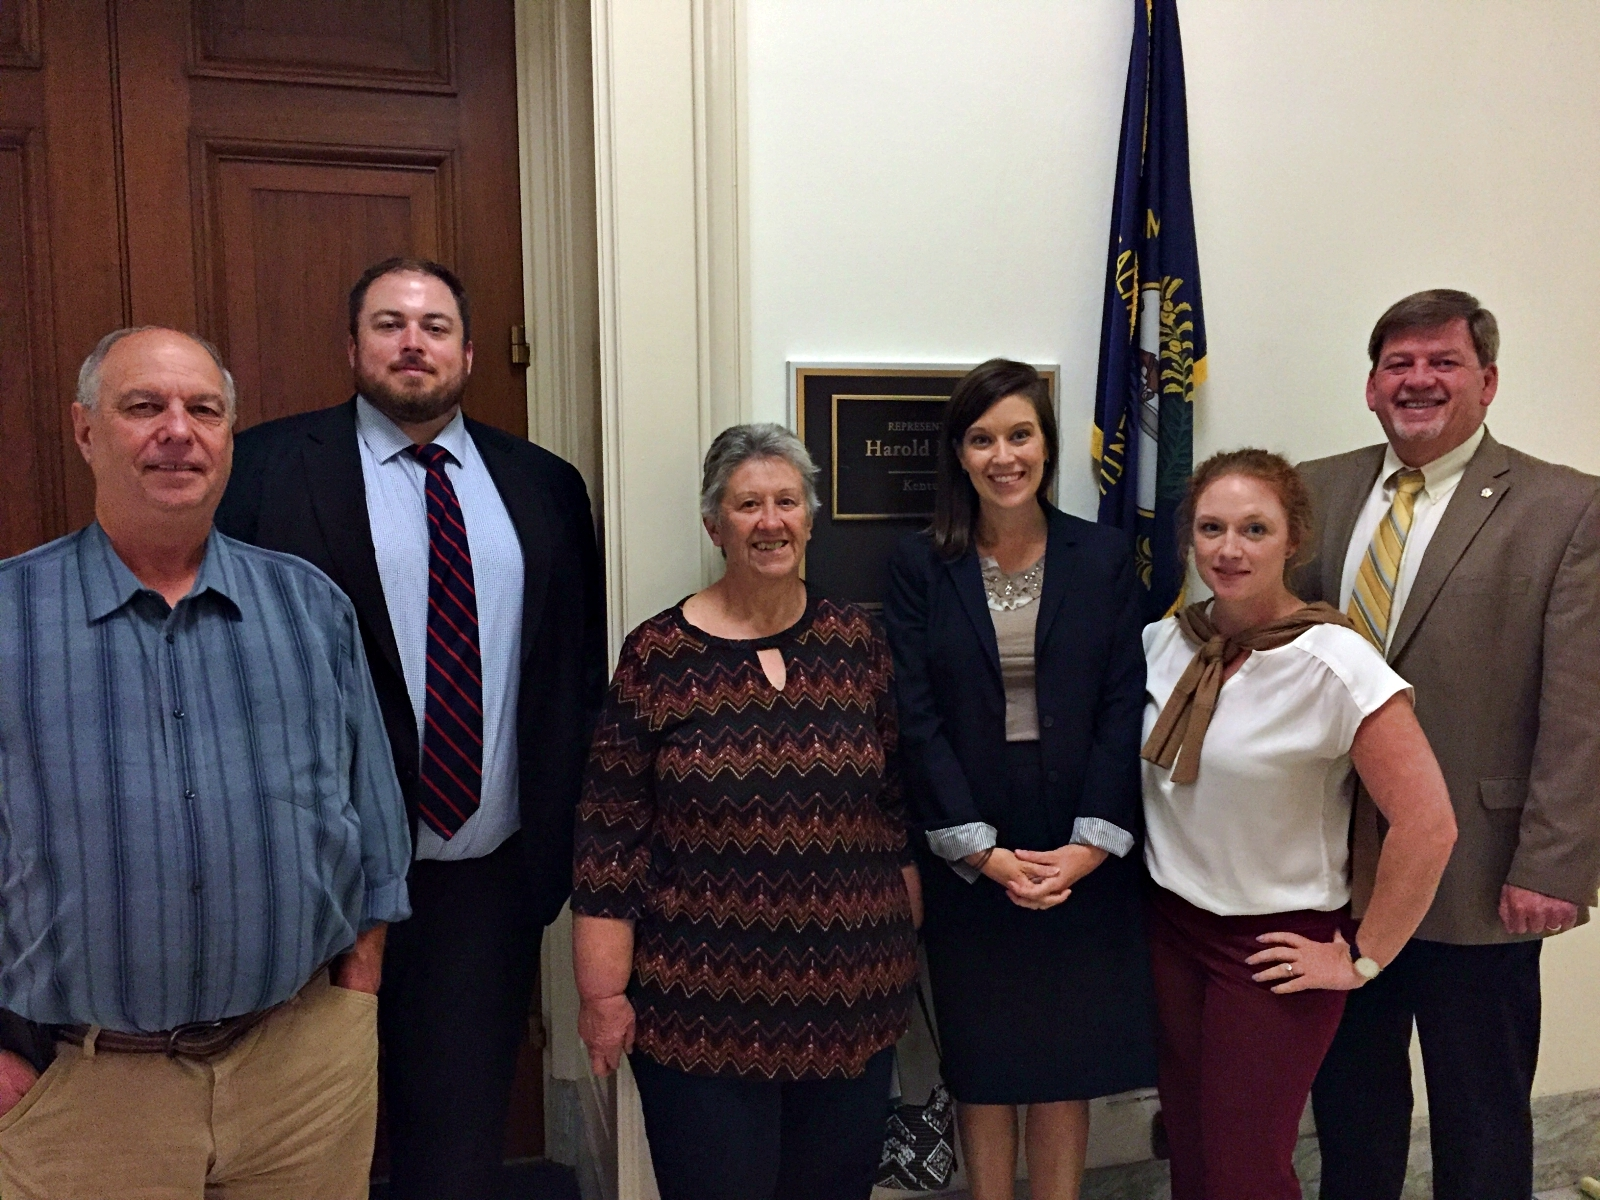 Hattie, Larry, Sarah, and Judge Executive Jim Ward meet with Megan Bell and Jake Johnson of Congressman Hal Rogers' Staff